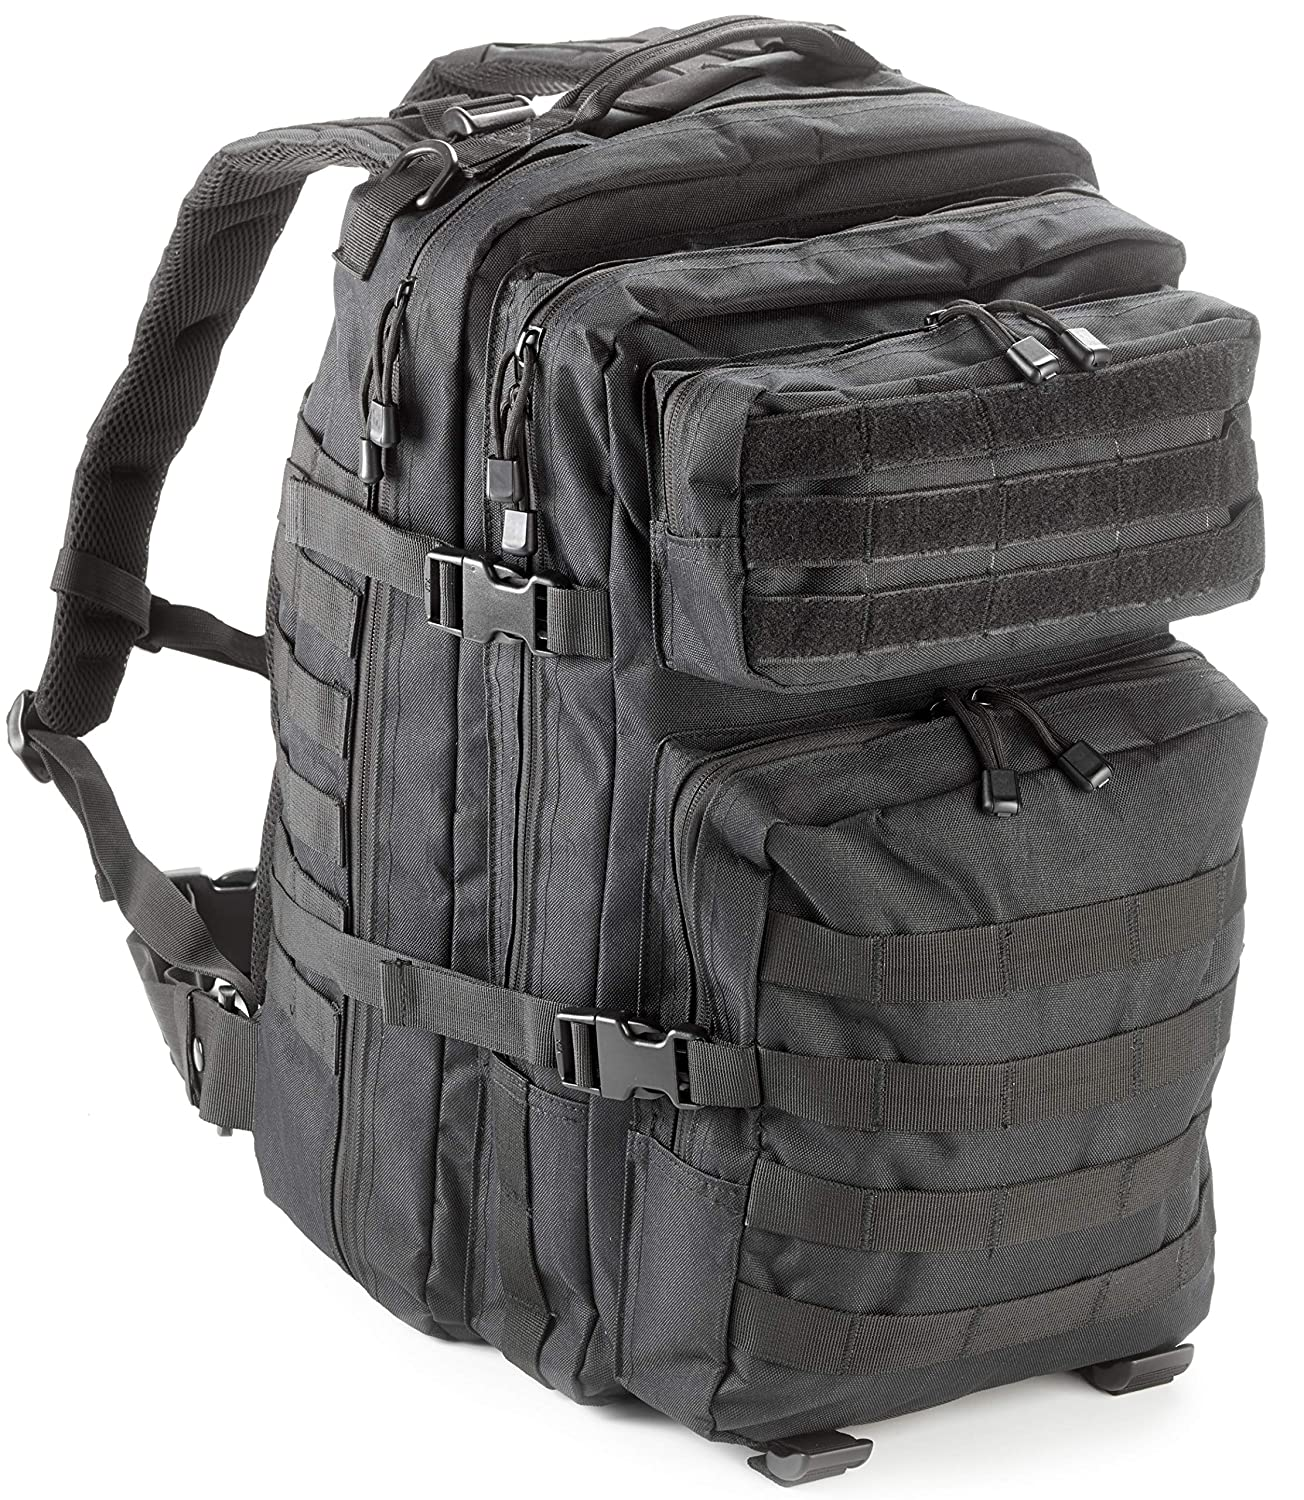 21bfc310e36e EverTac 40L Large Military Tactical MOLLE Backpack Best Pack for Bug Out  Bag, 3 Day Assault, Hunting, Hiking, Rucksack